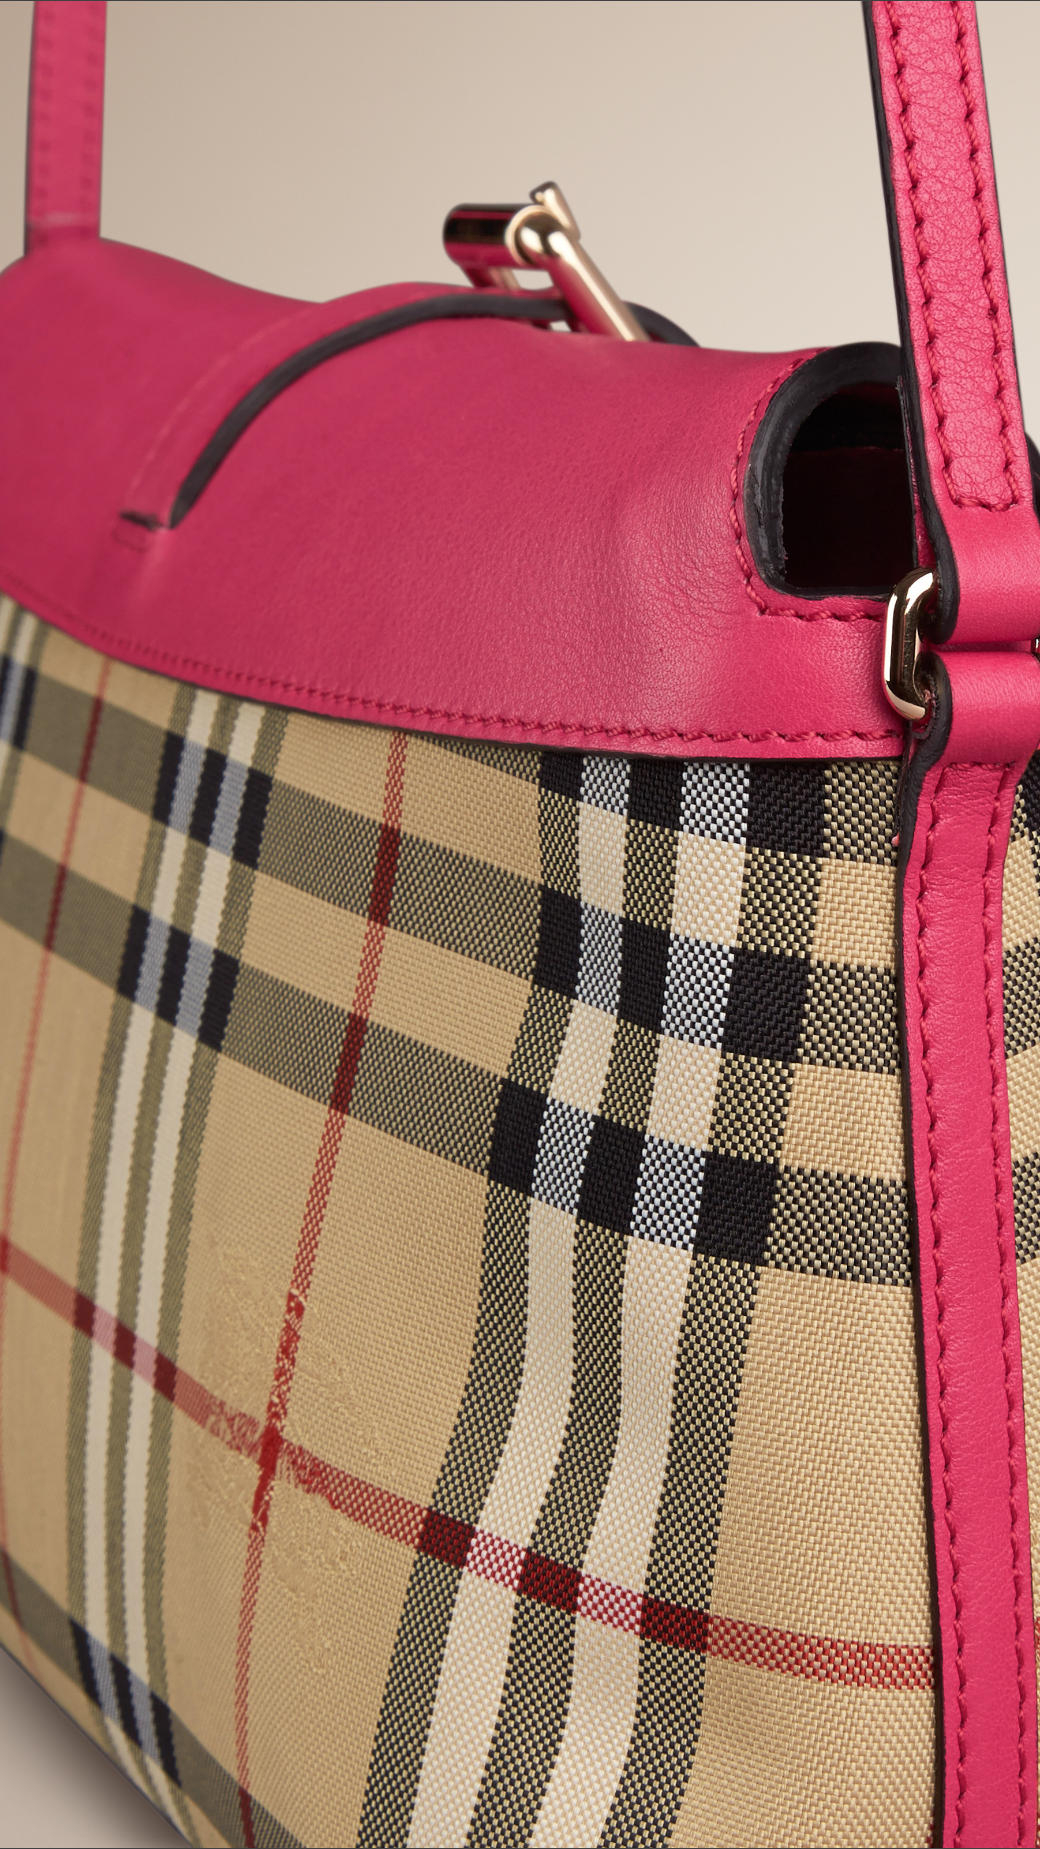 Burberry Small Horseferry Check Clutch Bag In Pink Lyst